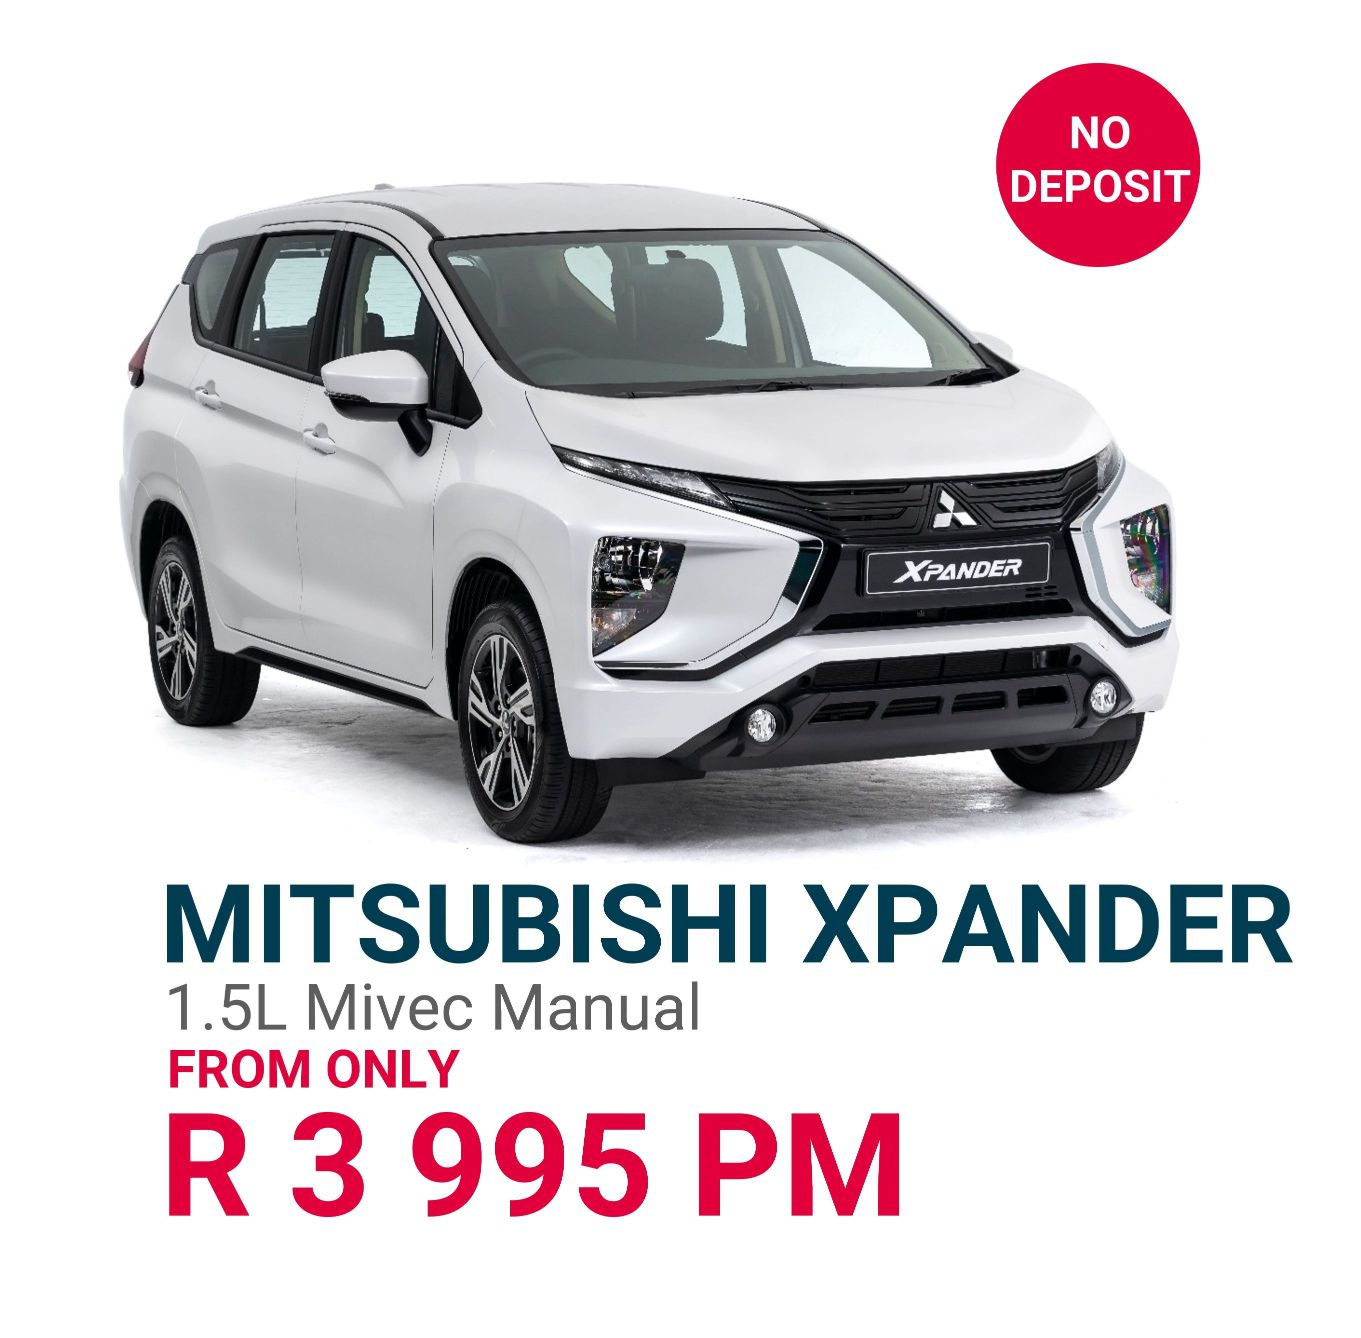 mitsubishi-xpander-from-only-r3-995pm